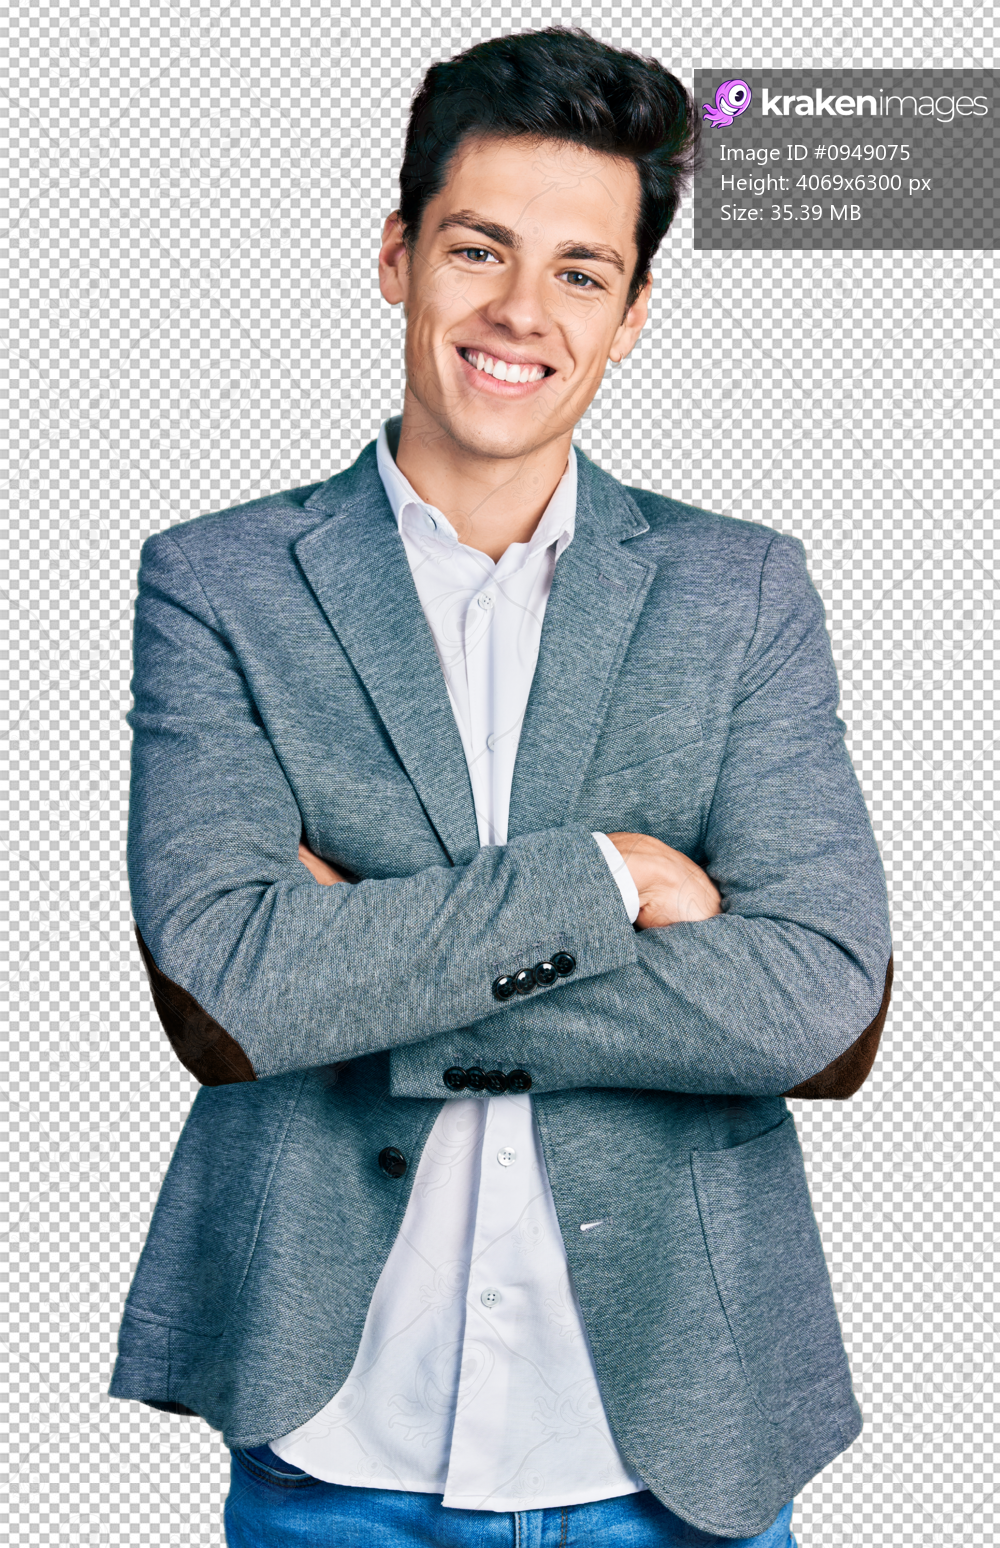 Young hispanic man wearing business clothes happy face smiling with crossed arms looking at the camera. positive person.